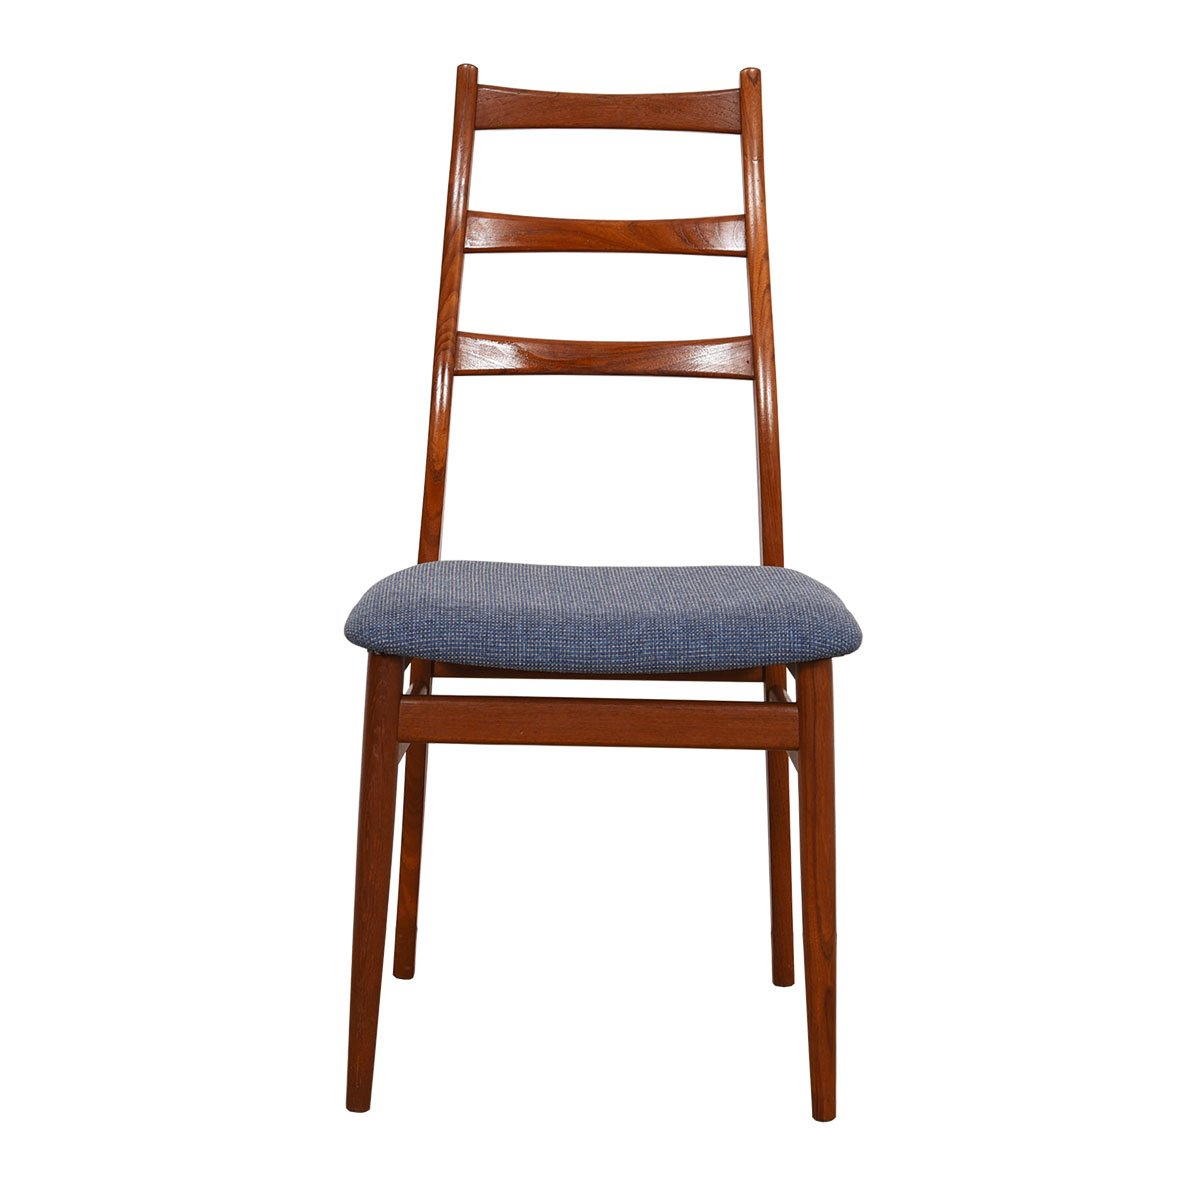 Set of 6 Danish Modern Dining Chairs in Teak